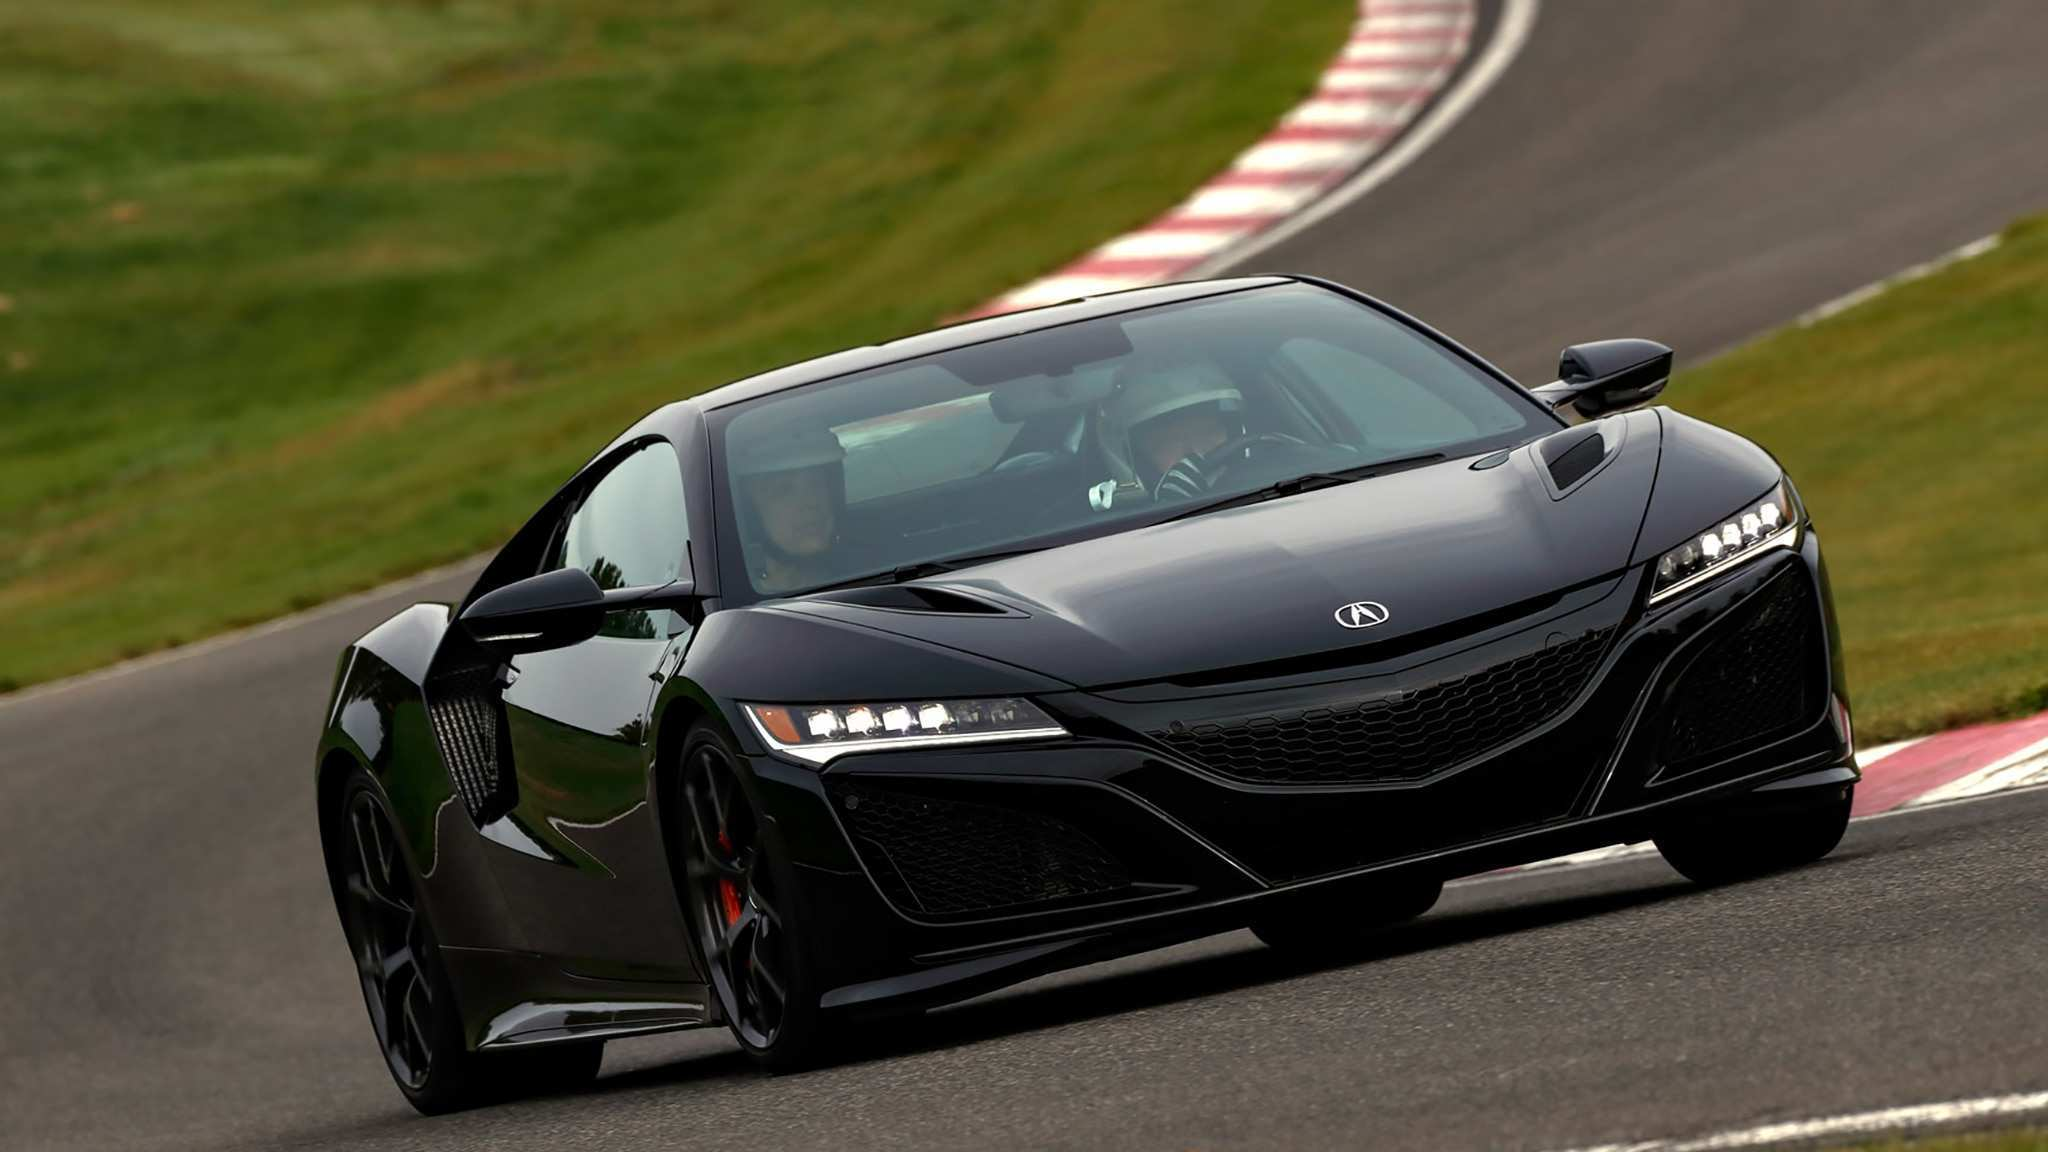 48 The 2019 Acura NSX Price And Review